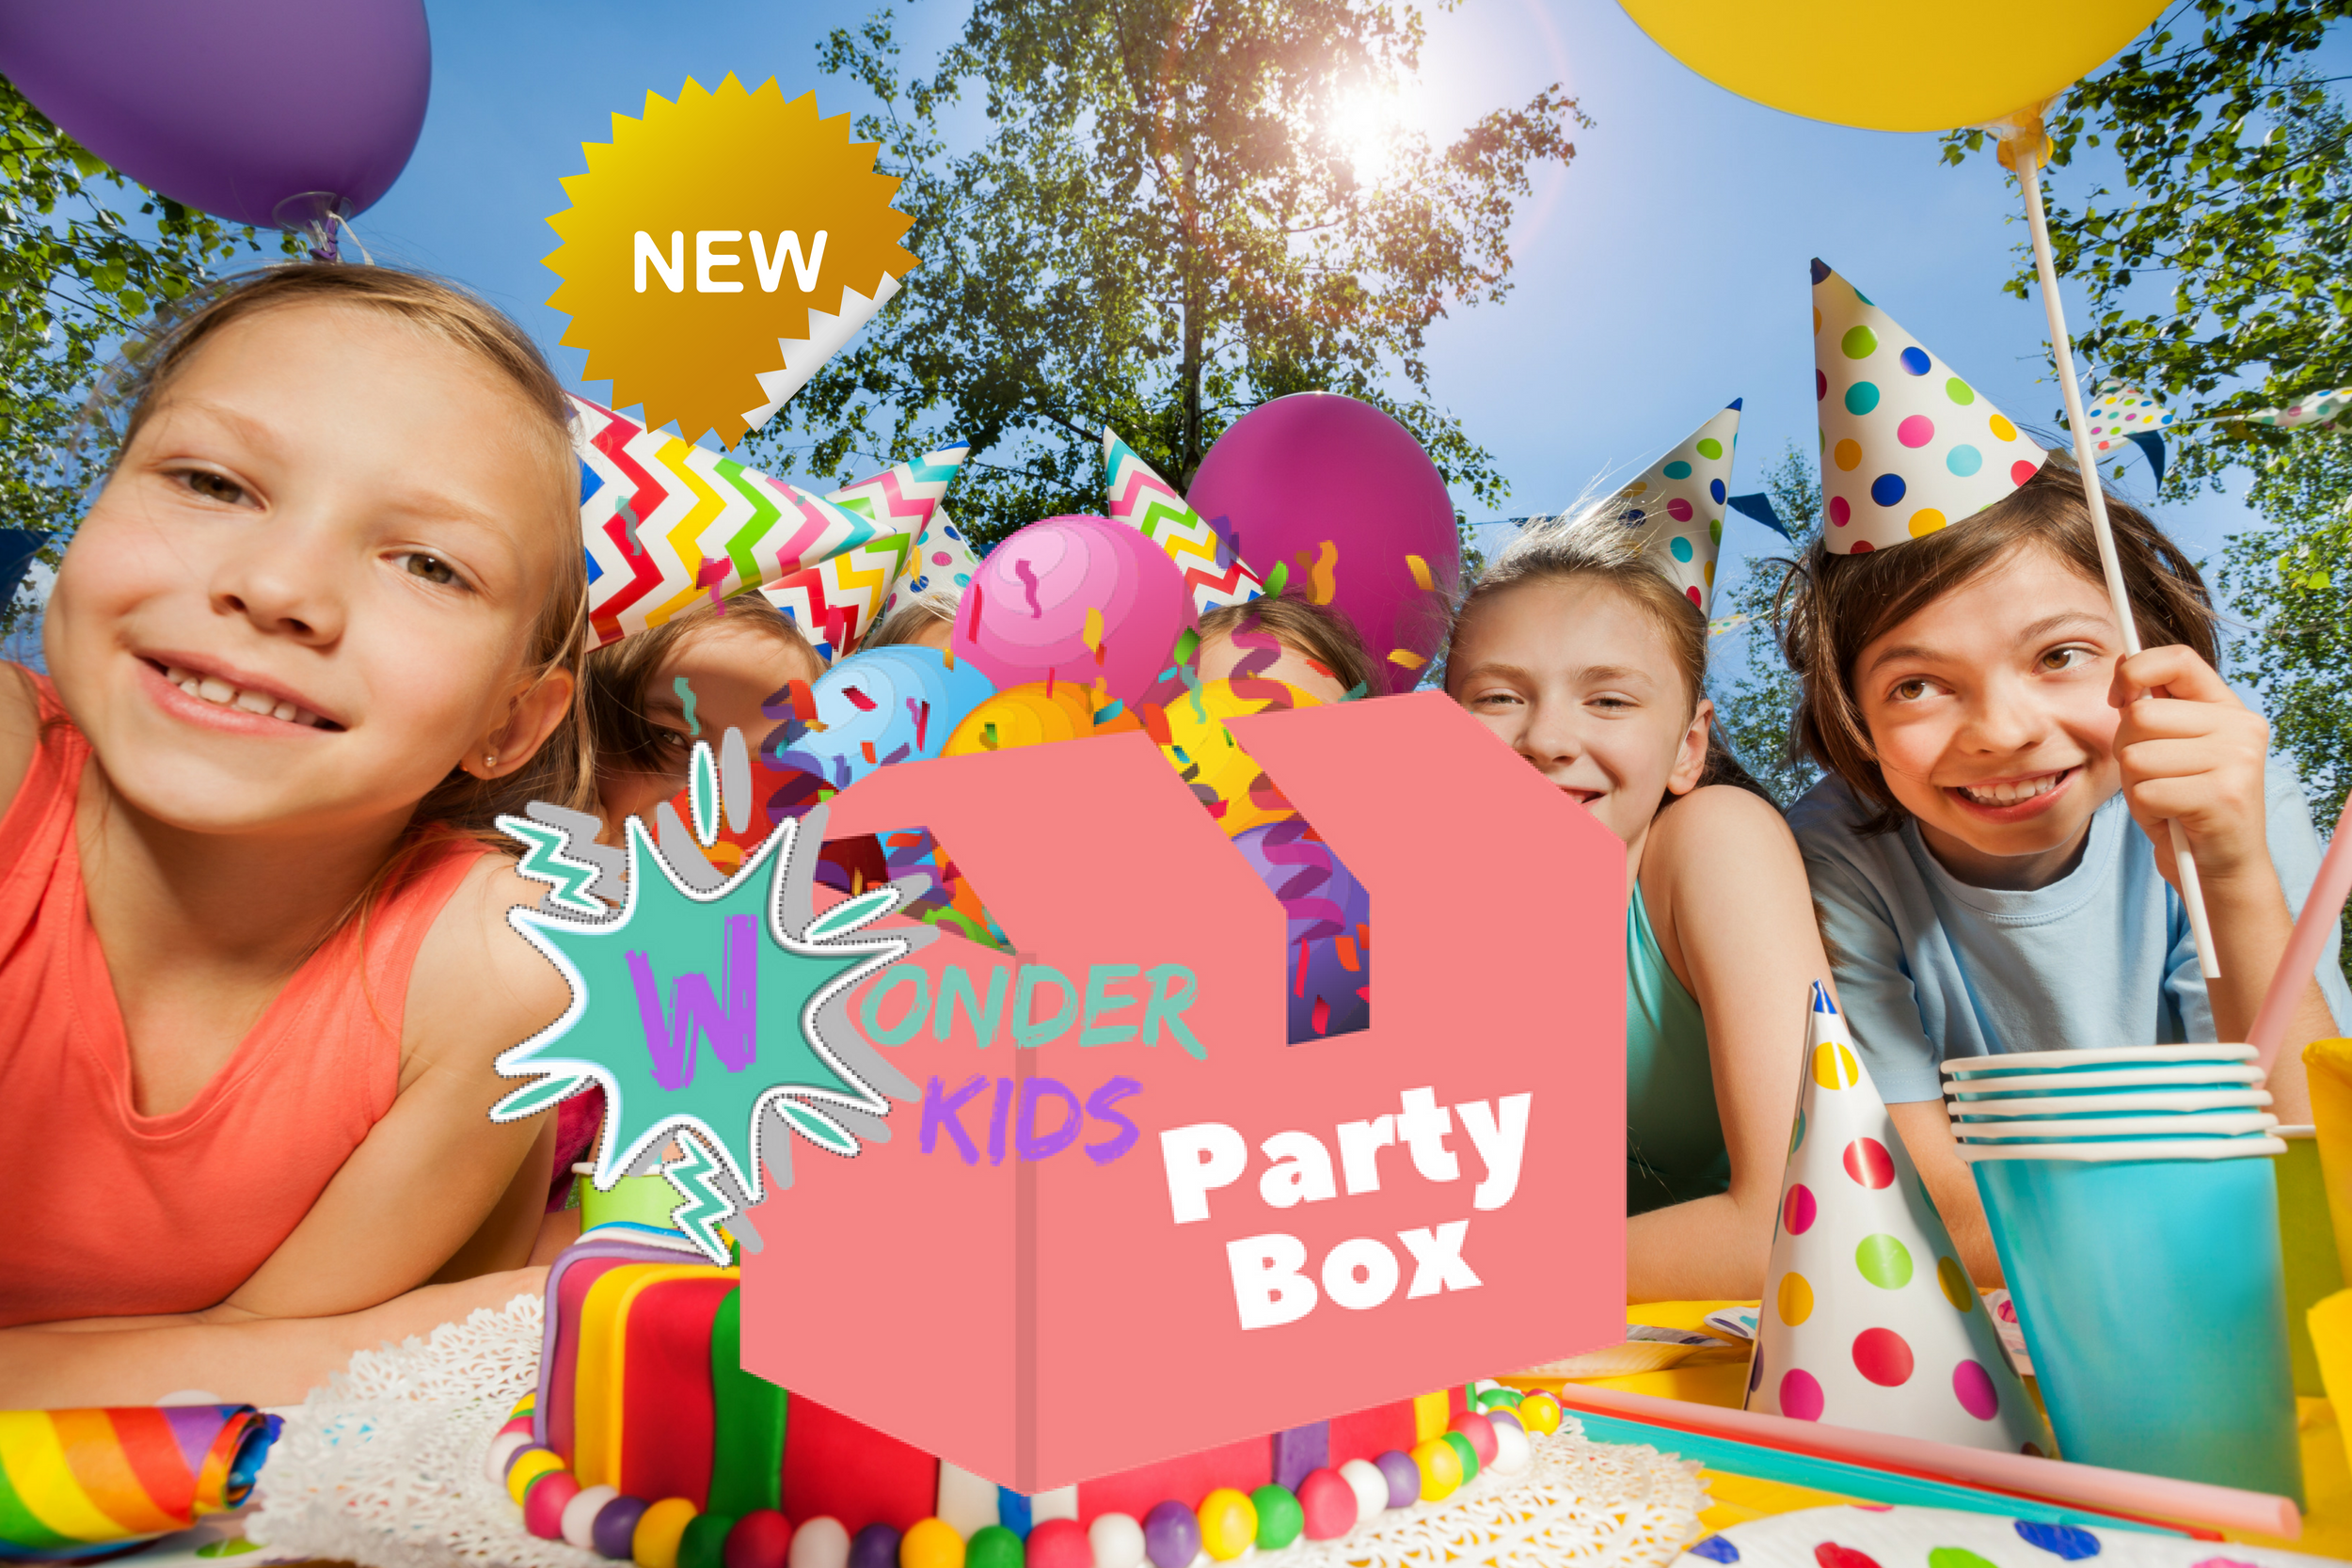 Our Range of Party Kits